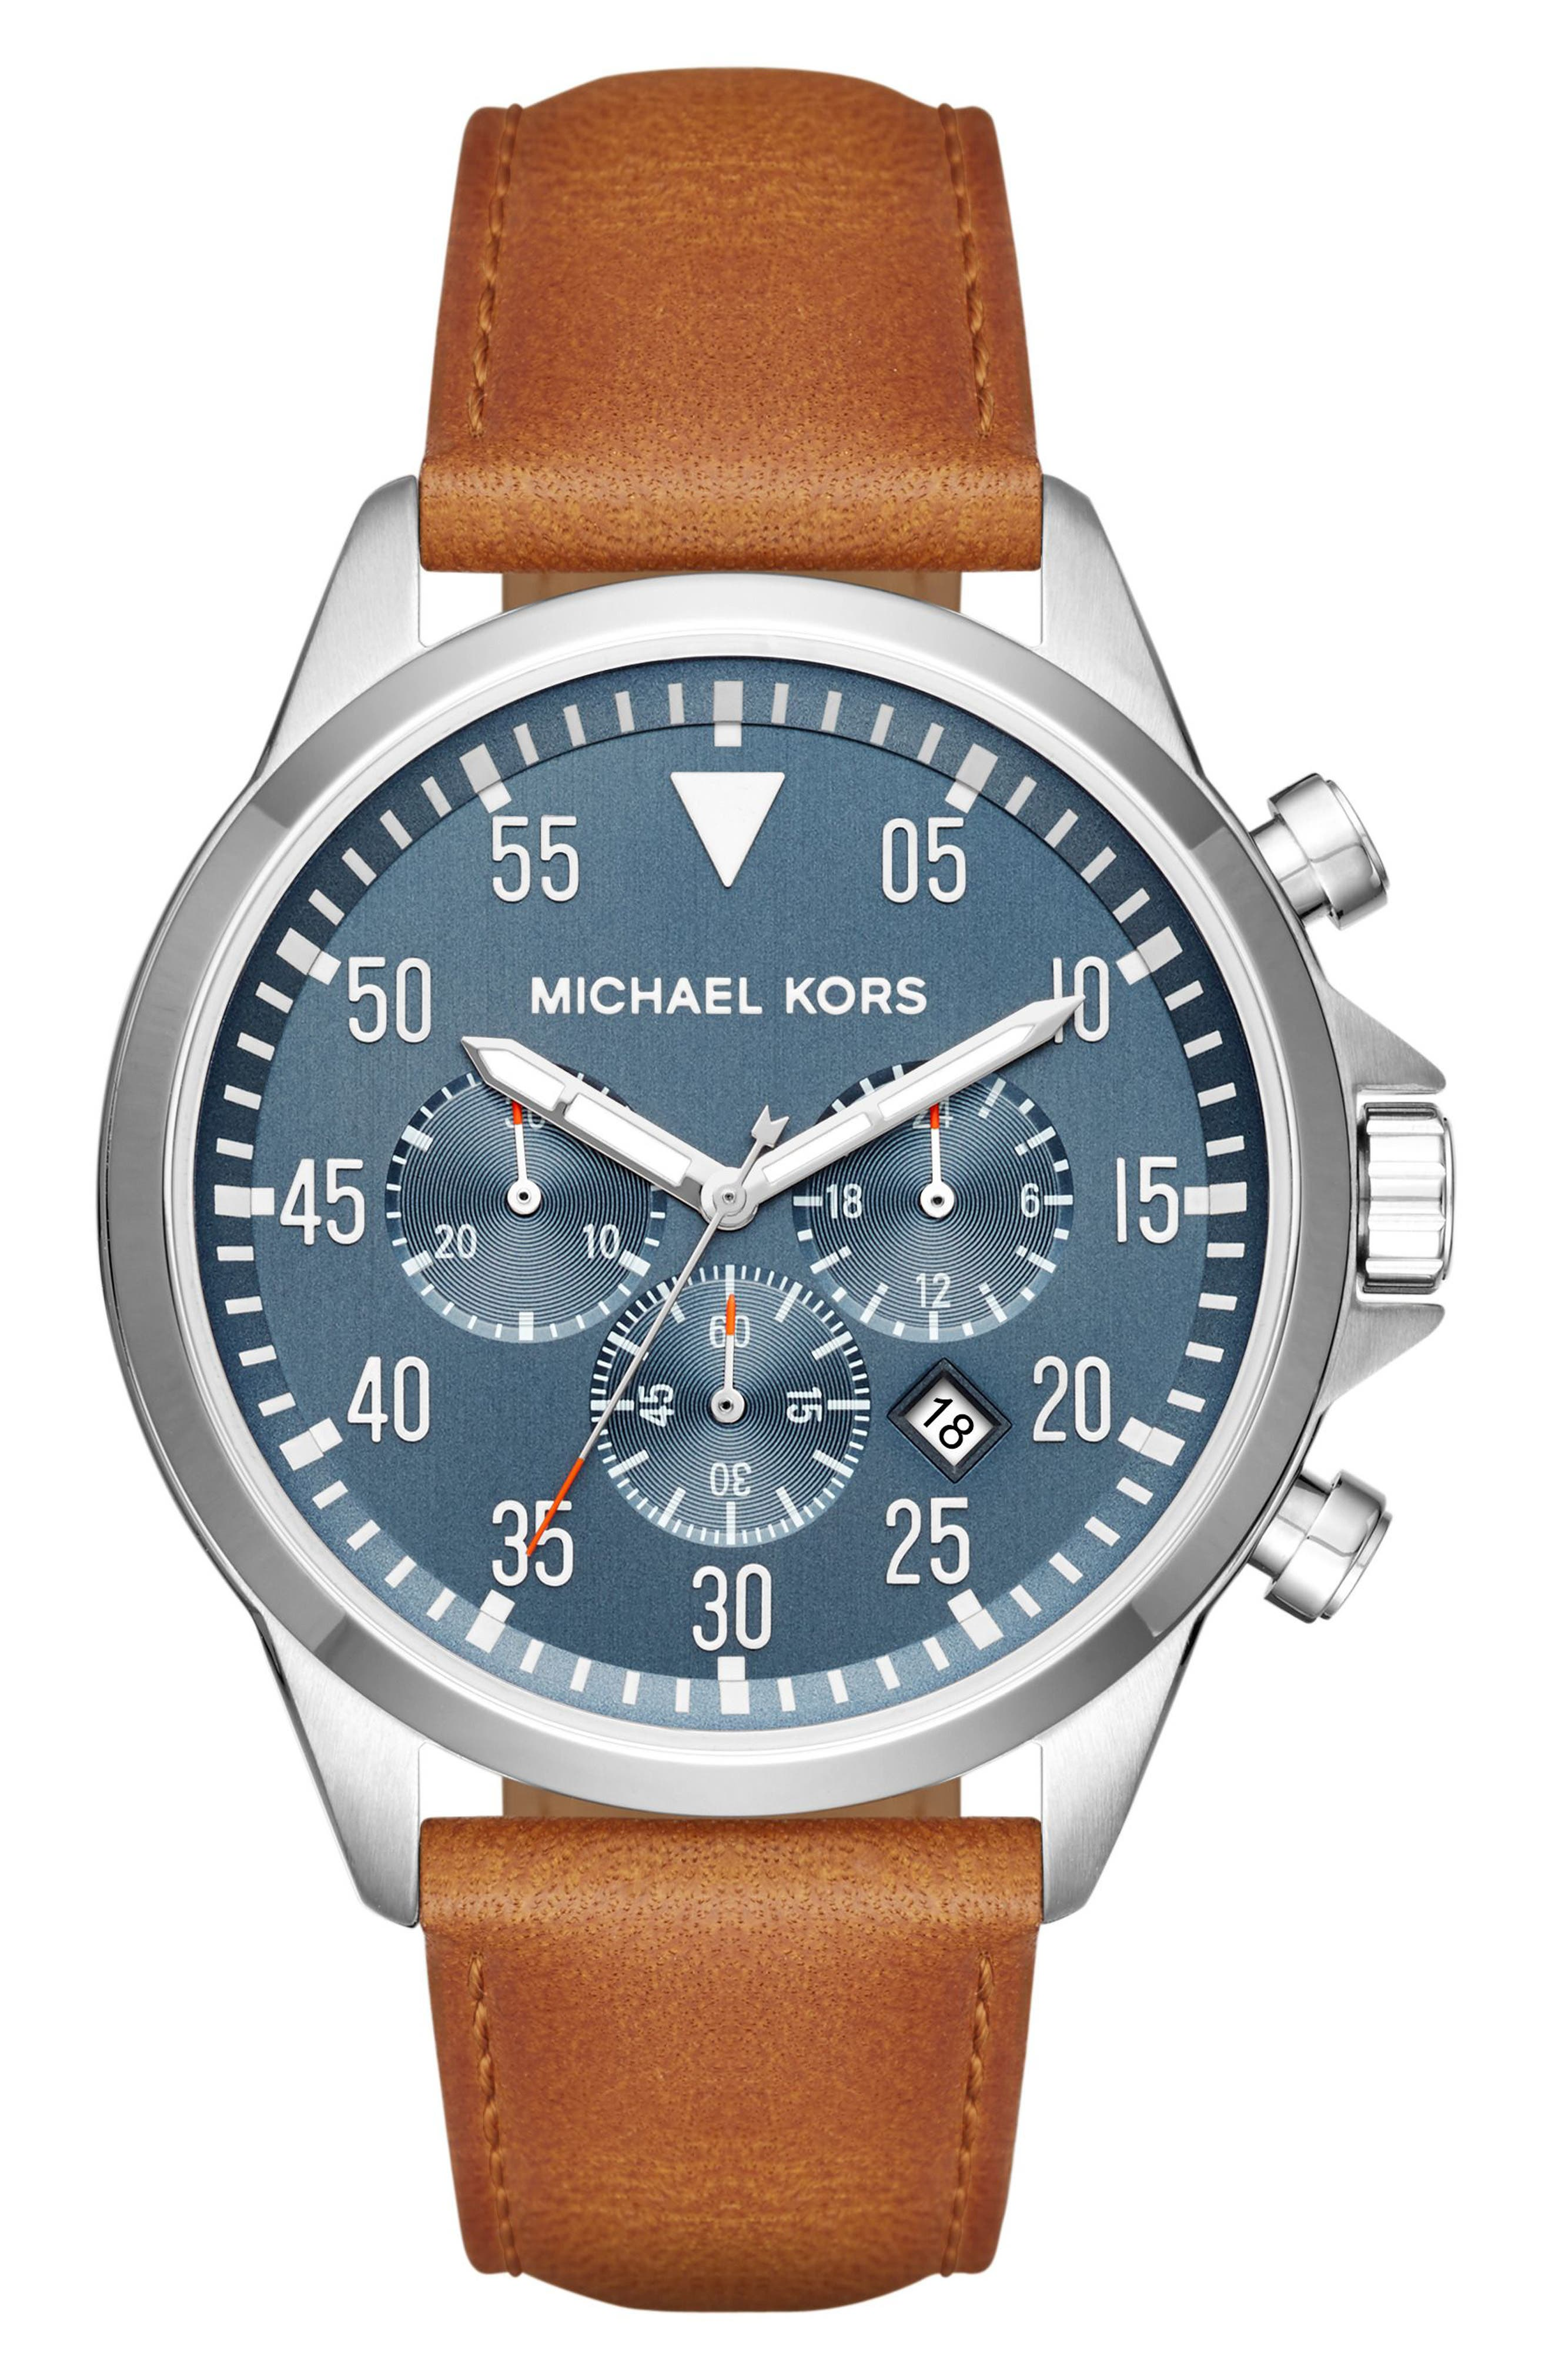 Michael Kors 'Gage' Chronograph Leather Strap Watch, 45mm